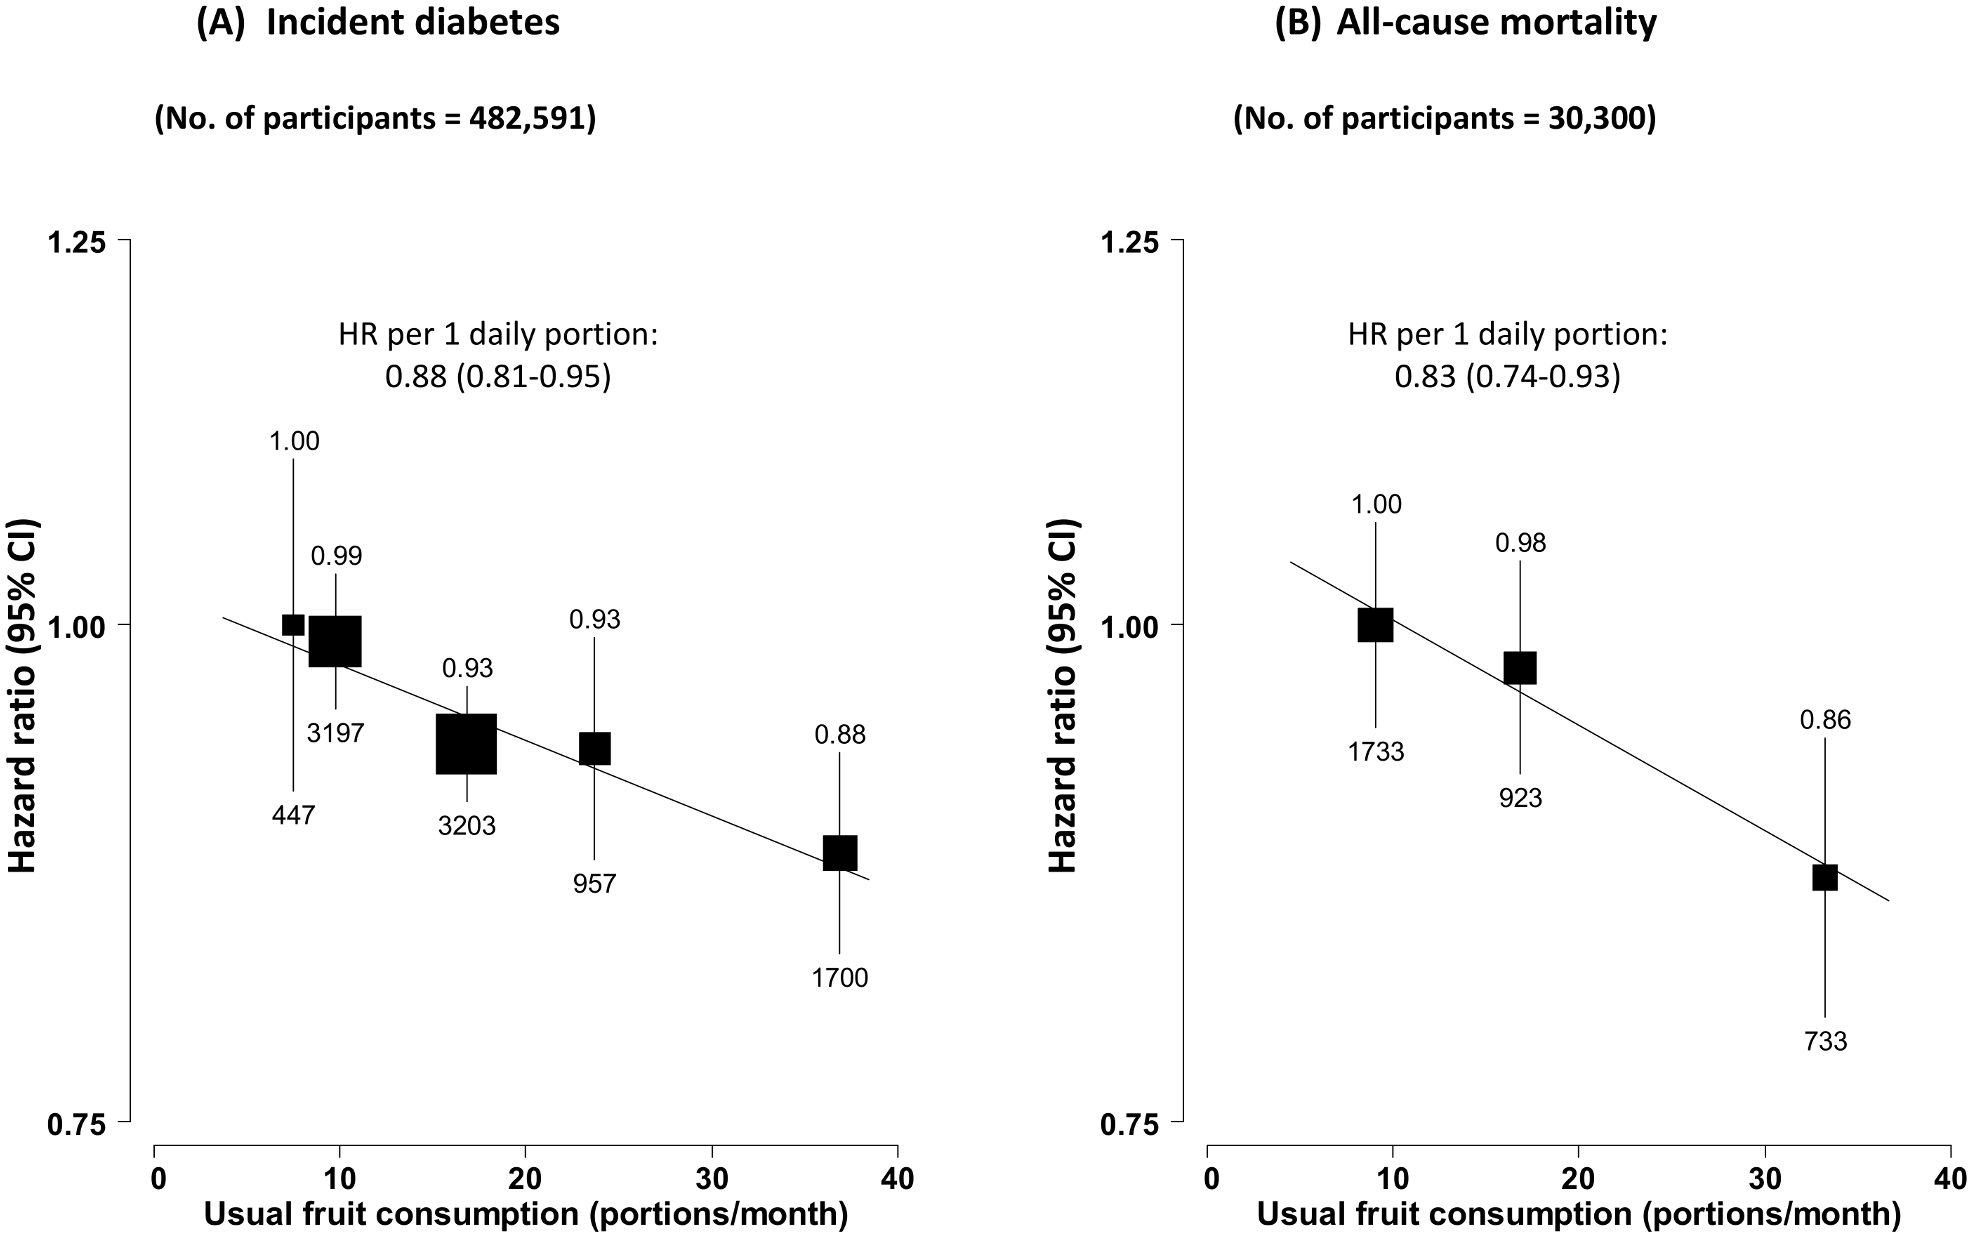 Adjusted hazard ratios for incident diabetes and all-cause mortality among those with diabetes at baseline, by fresh fruit consumption.